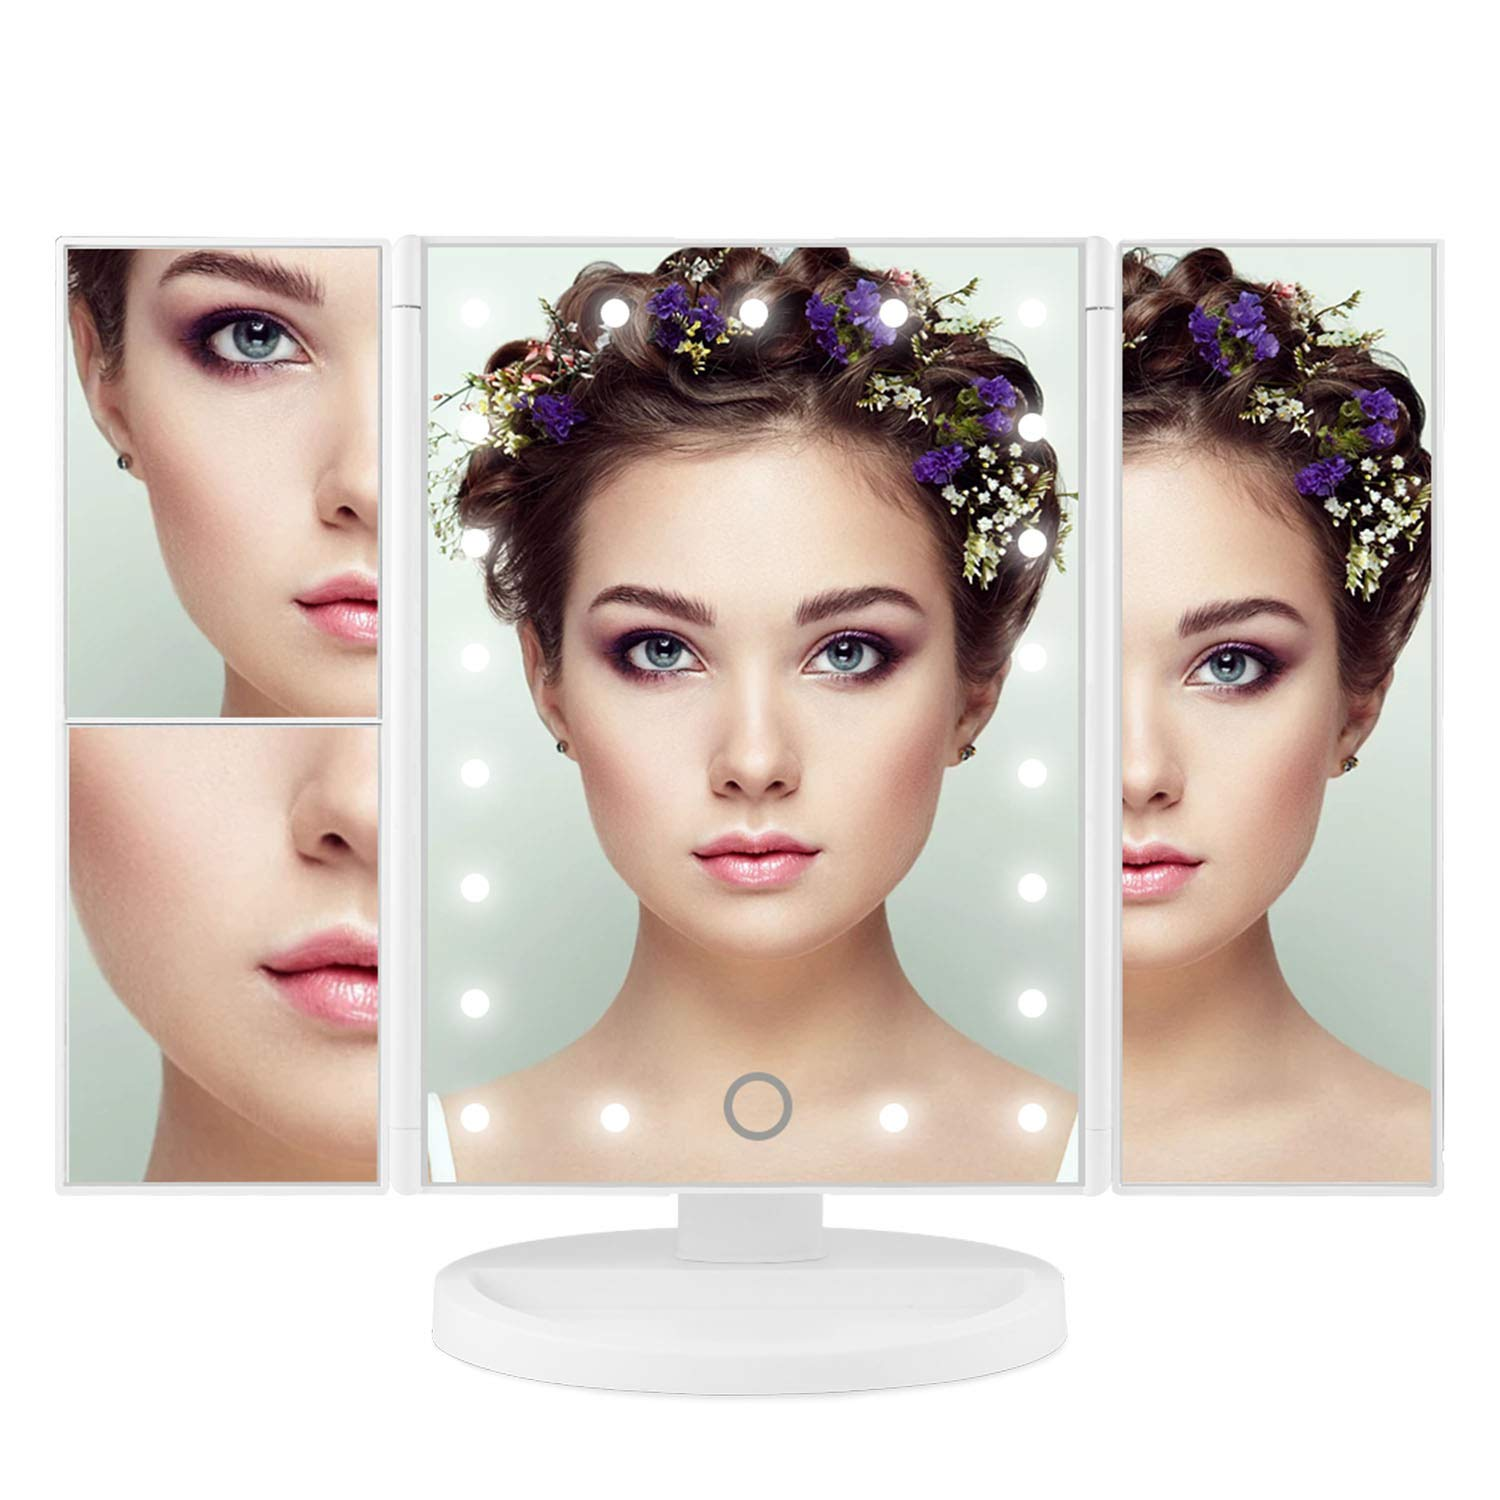 Vanity Makeup Mirror, ISASSY Trifold 21 Led Lighted with Touch Screen, 1x/2x/3x Magnification, 180° Adjustable Stand for Women Men Girls Cosmetic Makeup by ISASSY